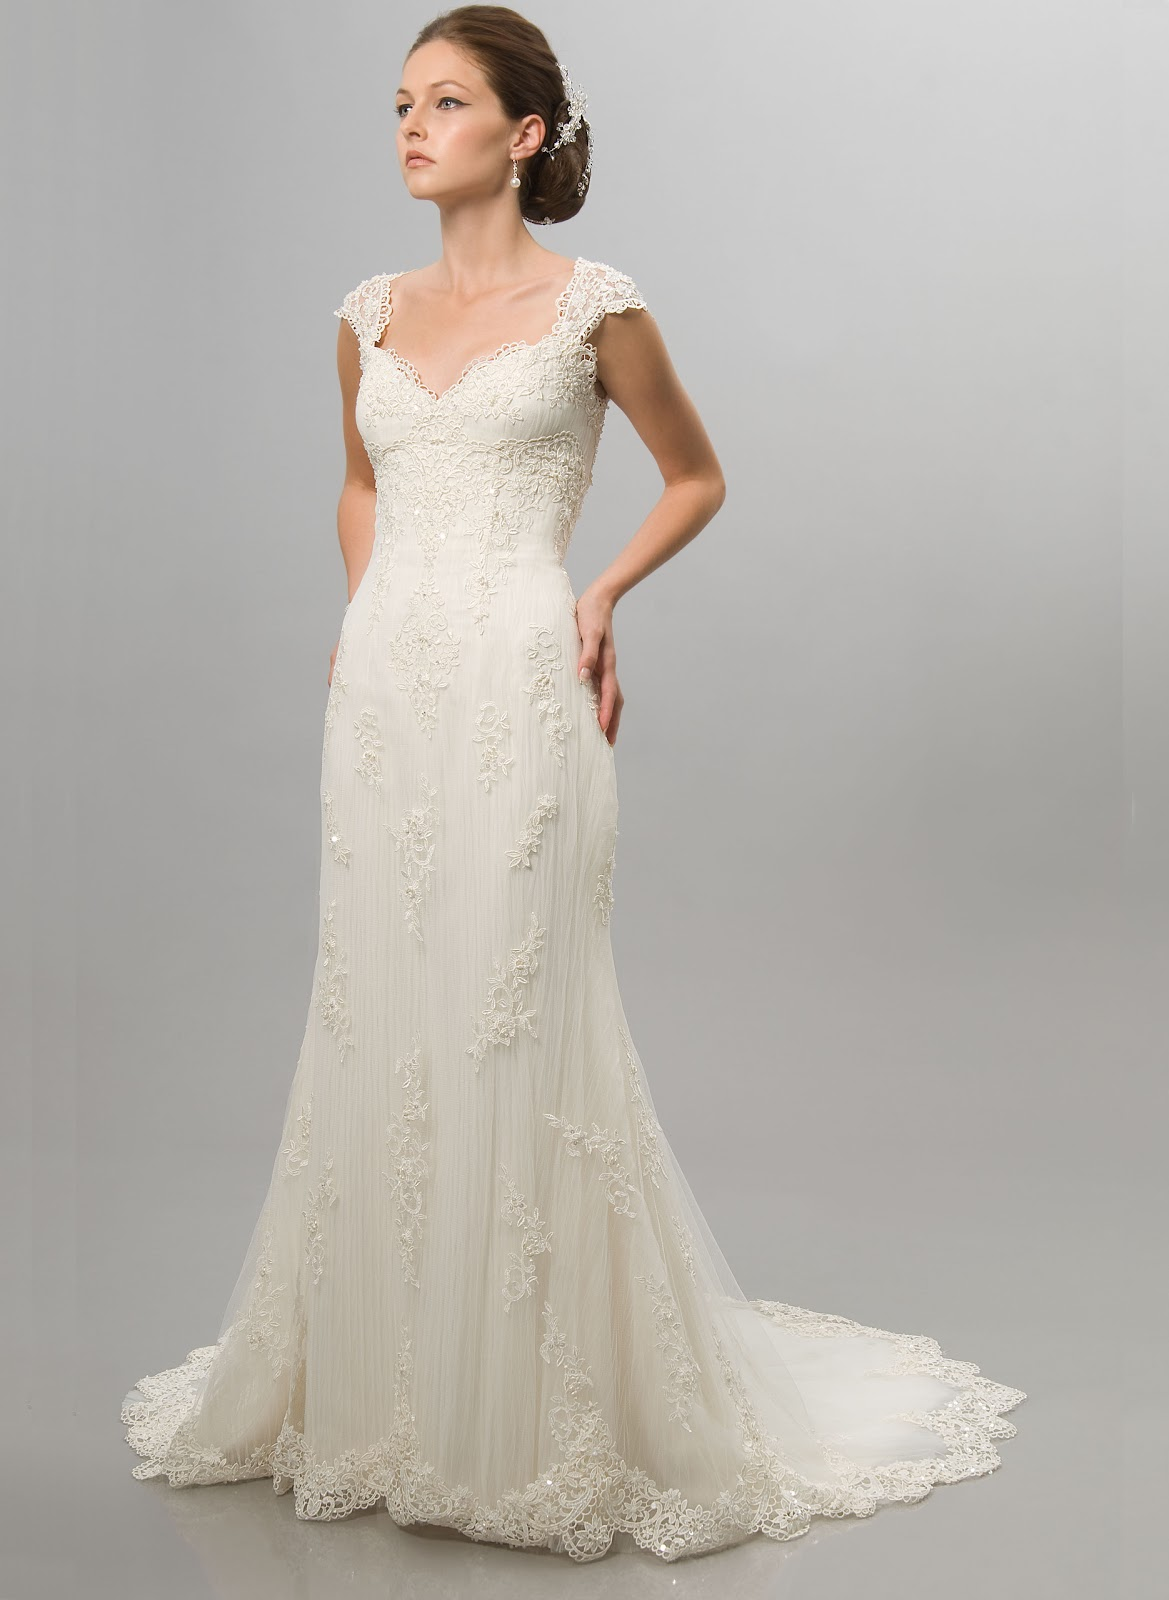 Off White Wedding Dresses : Off white wedding dresses plan ideas